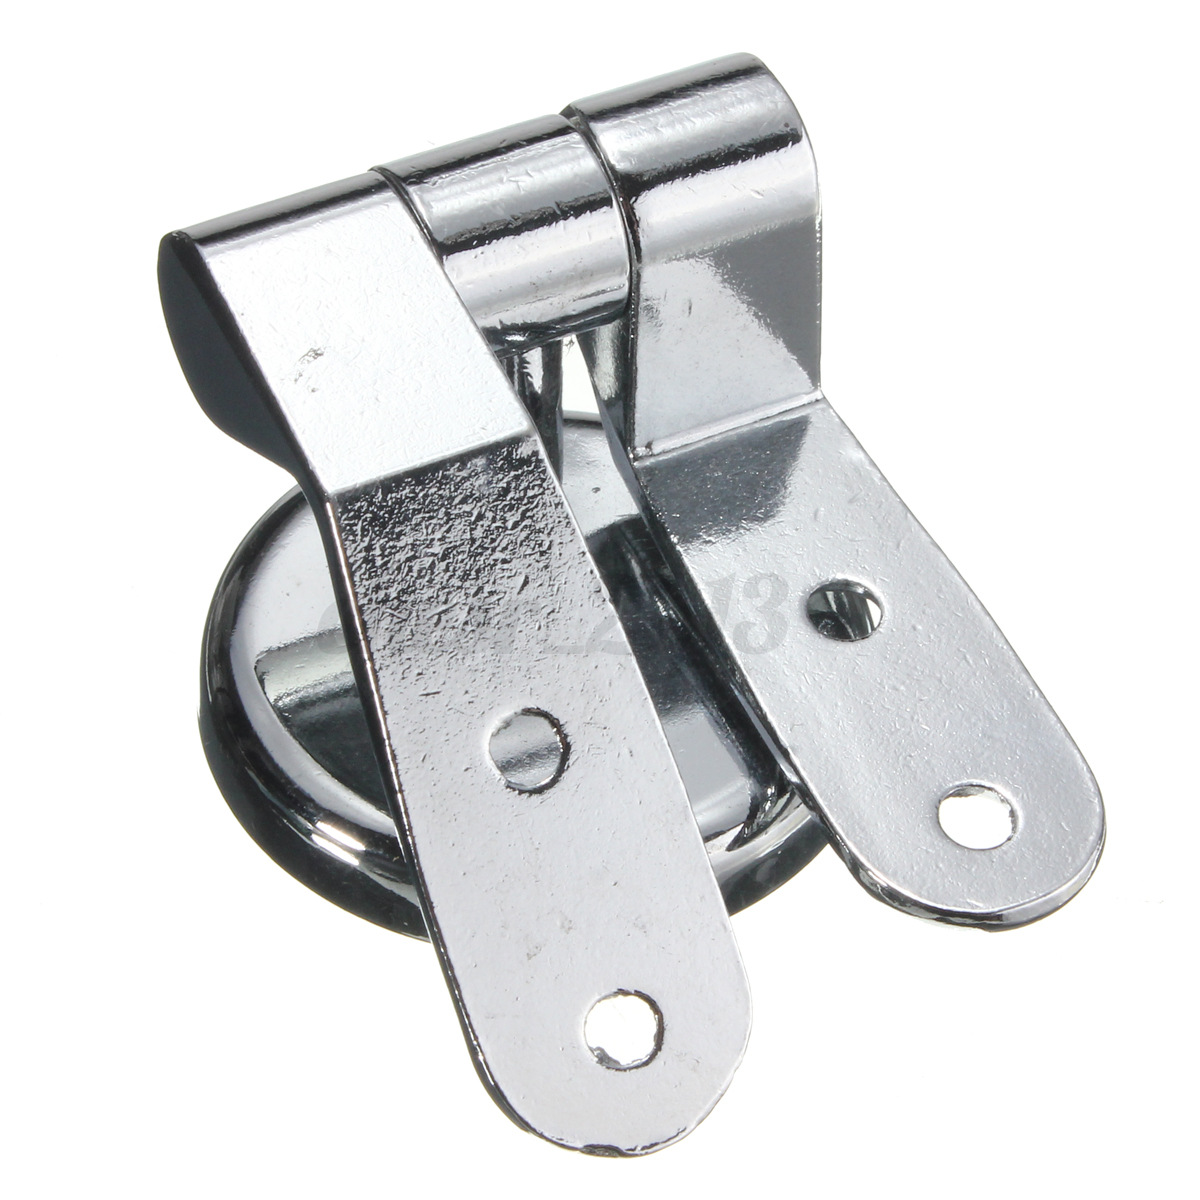 Replacement Toilet Seat Hinge Mounting Set Chrome Hinges